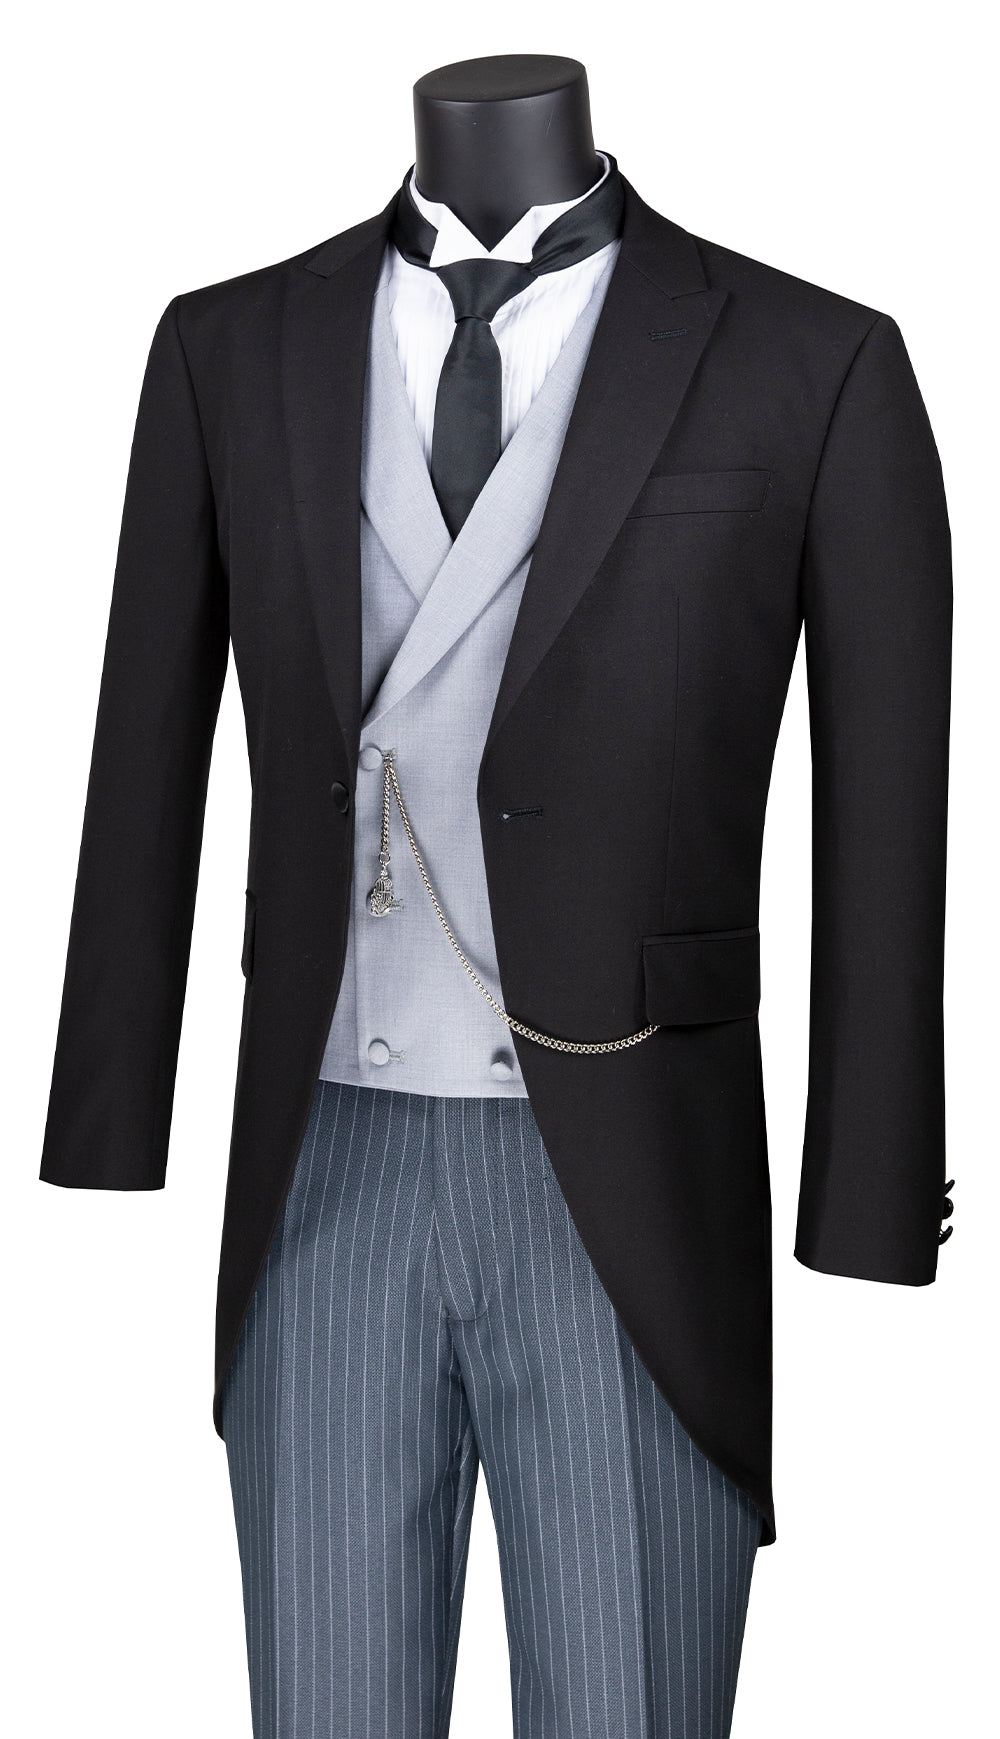 Vinci Tuxedo MTC-1 - Church Suits For Less